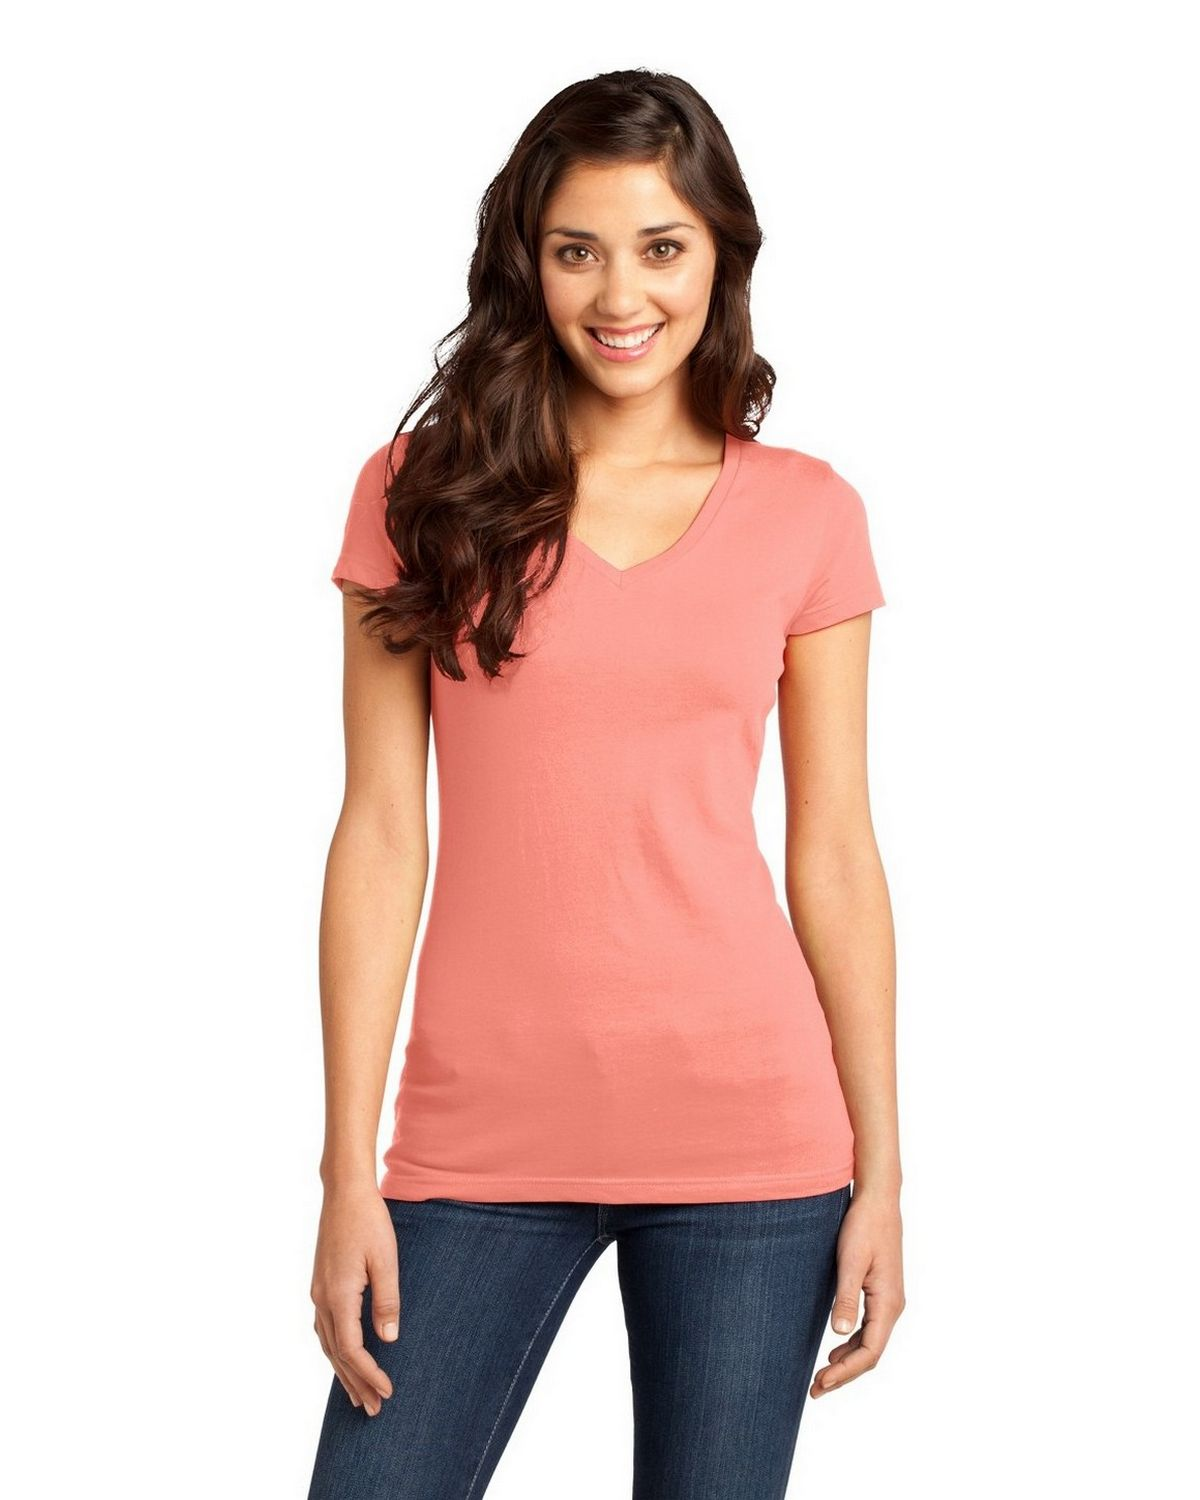 District DT6501 Very Important V-Neck Tee - Peach - XXL DT6501